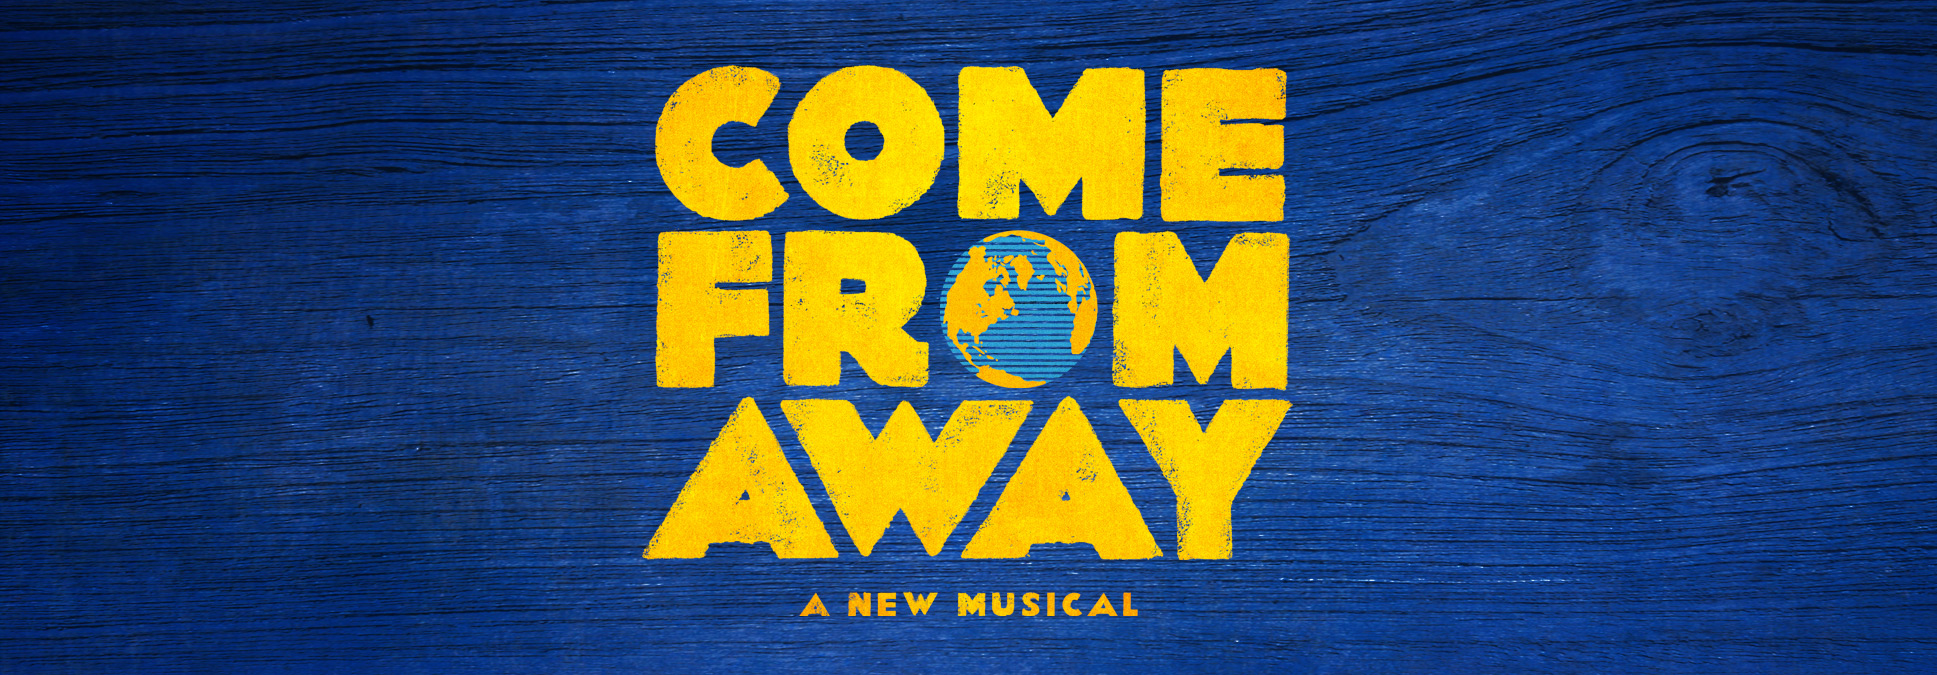 come from away marcus center for the